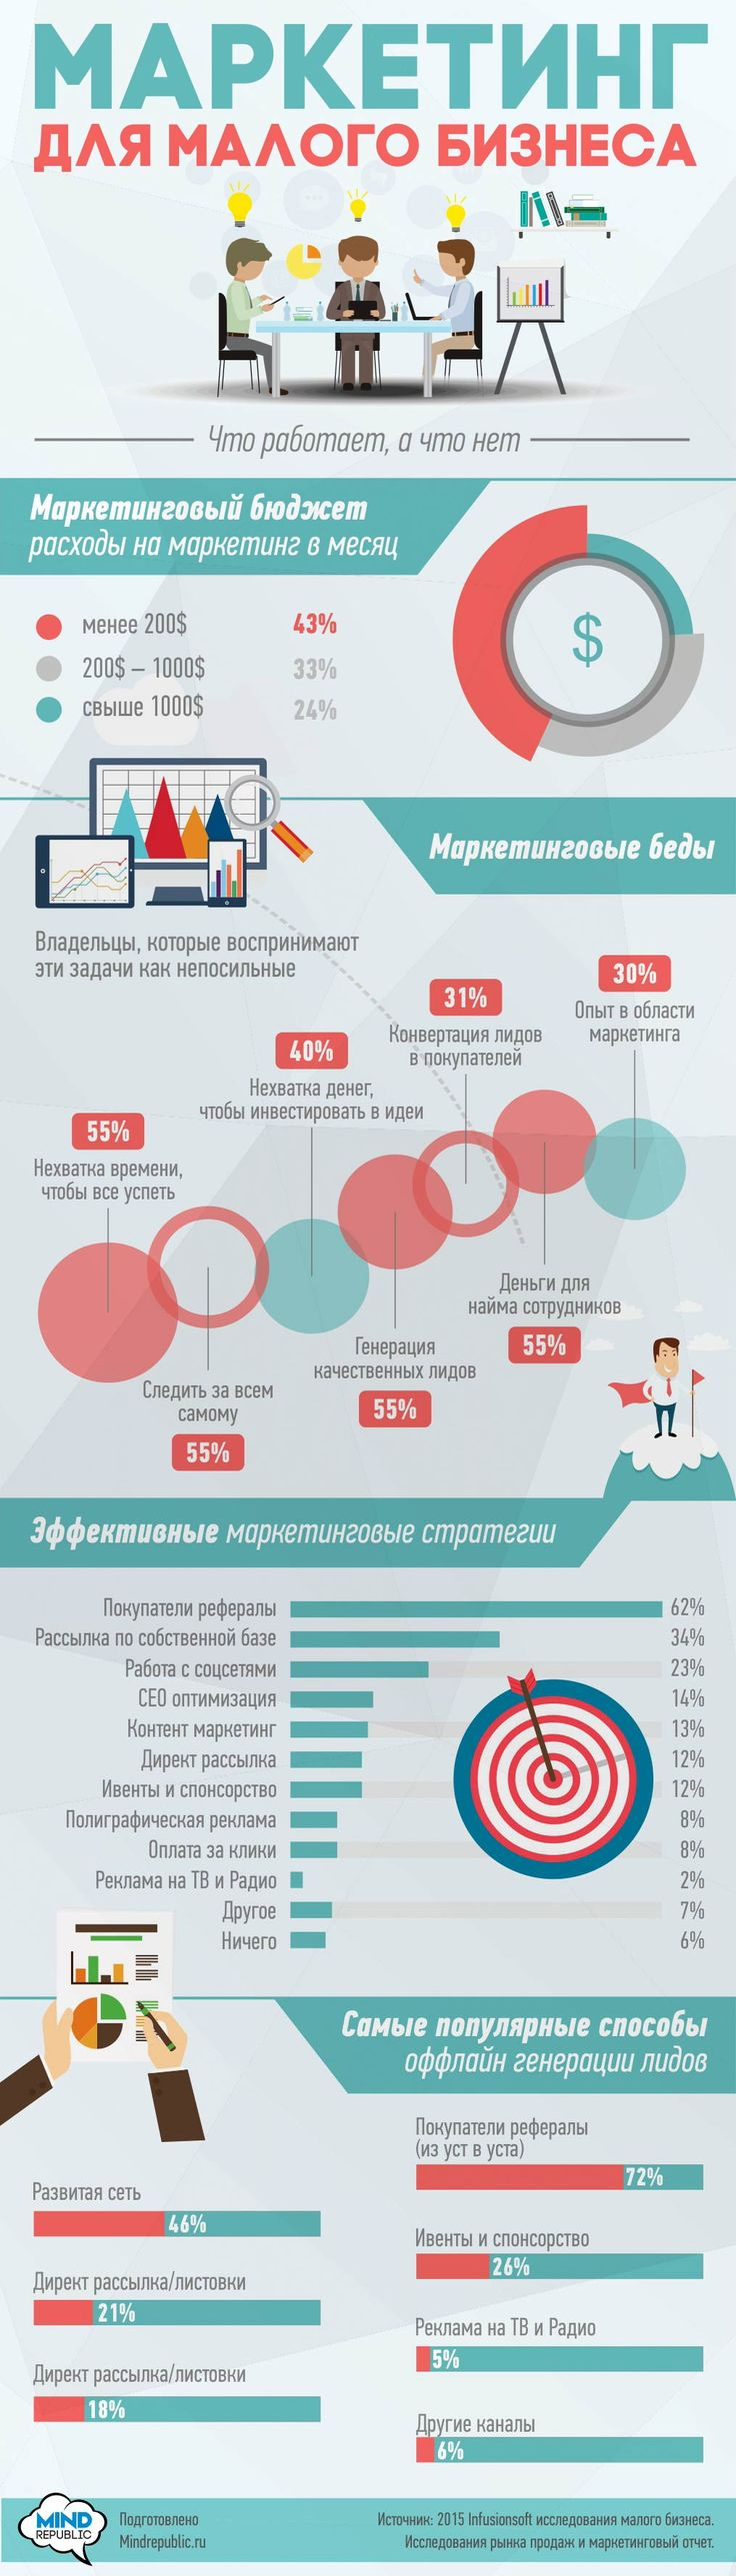 Маркетинг для малого бизнеса. Инфографика. Small business marketing. Infografics.